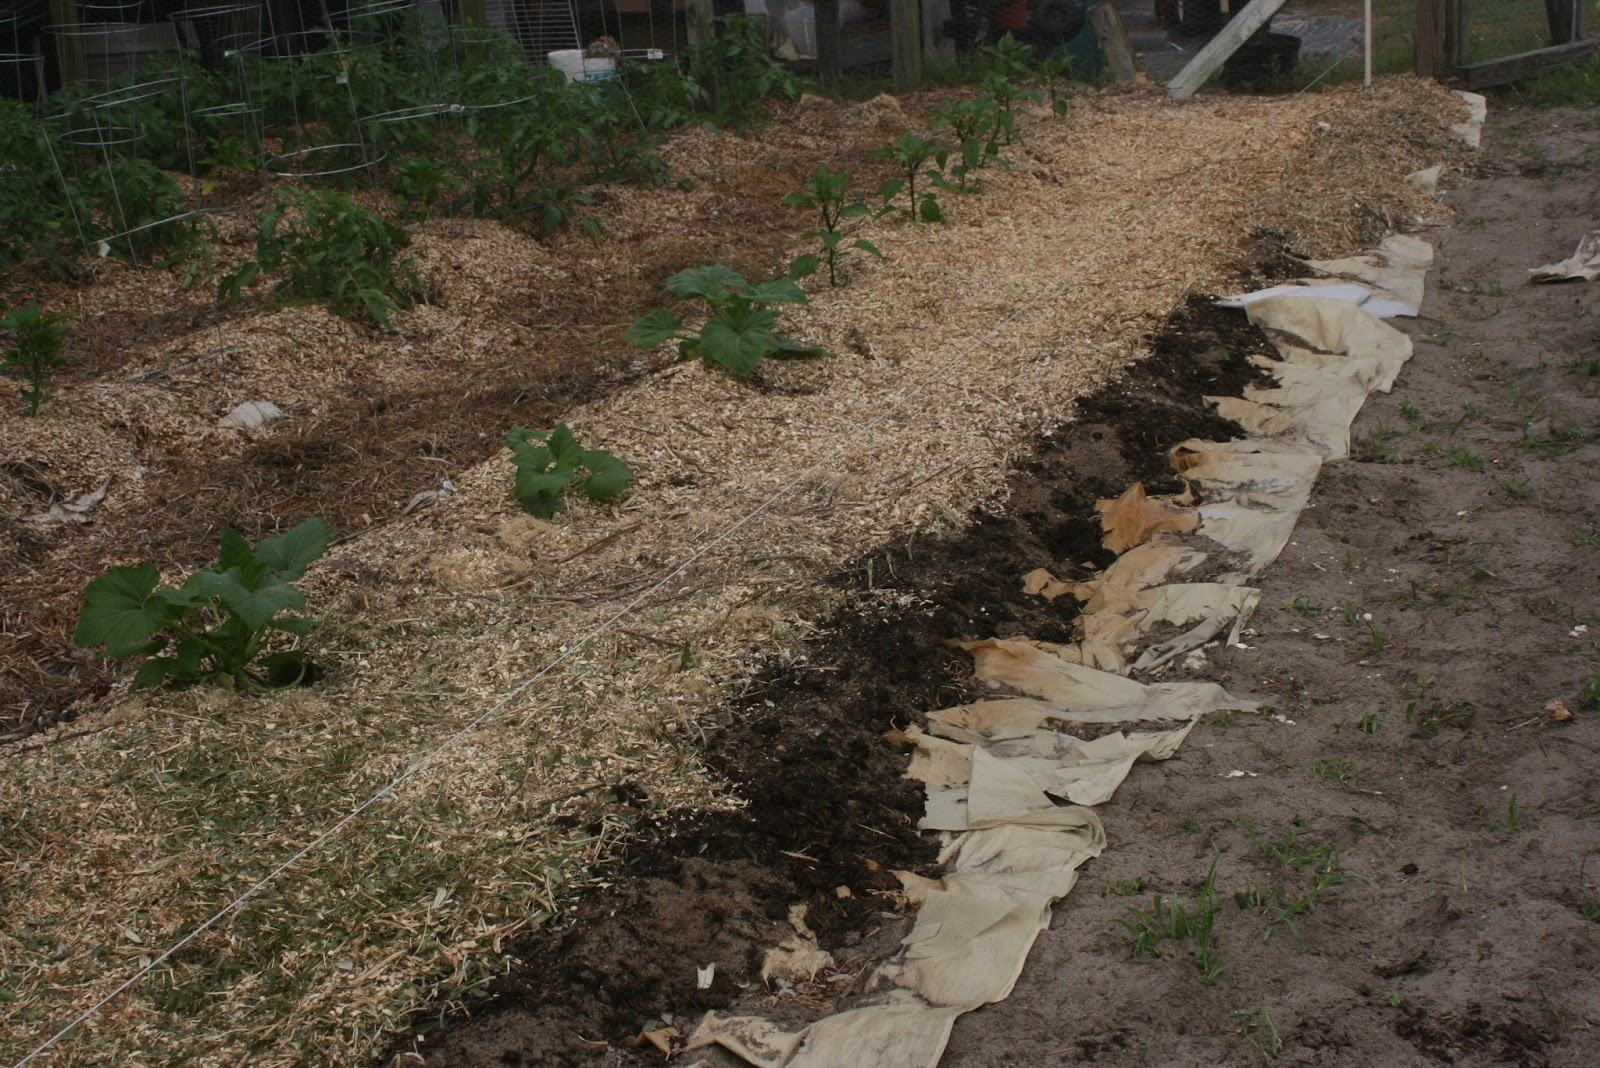 Challenged Survival: Back to Eden Garden Project